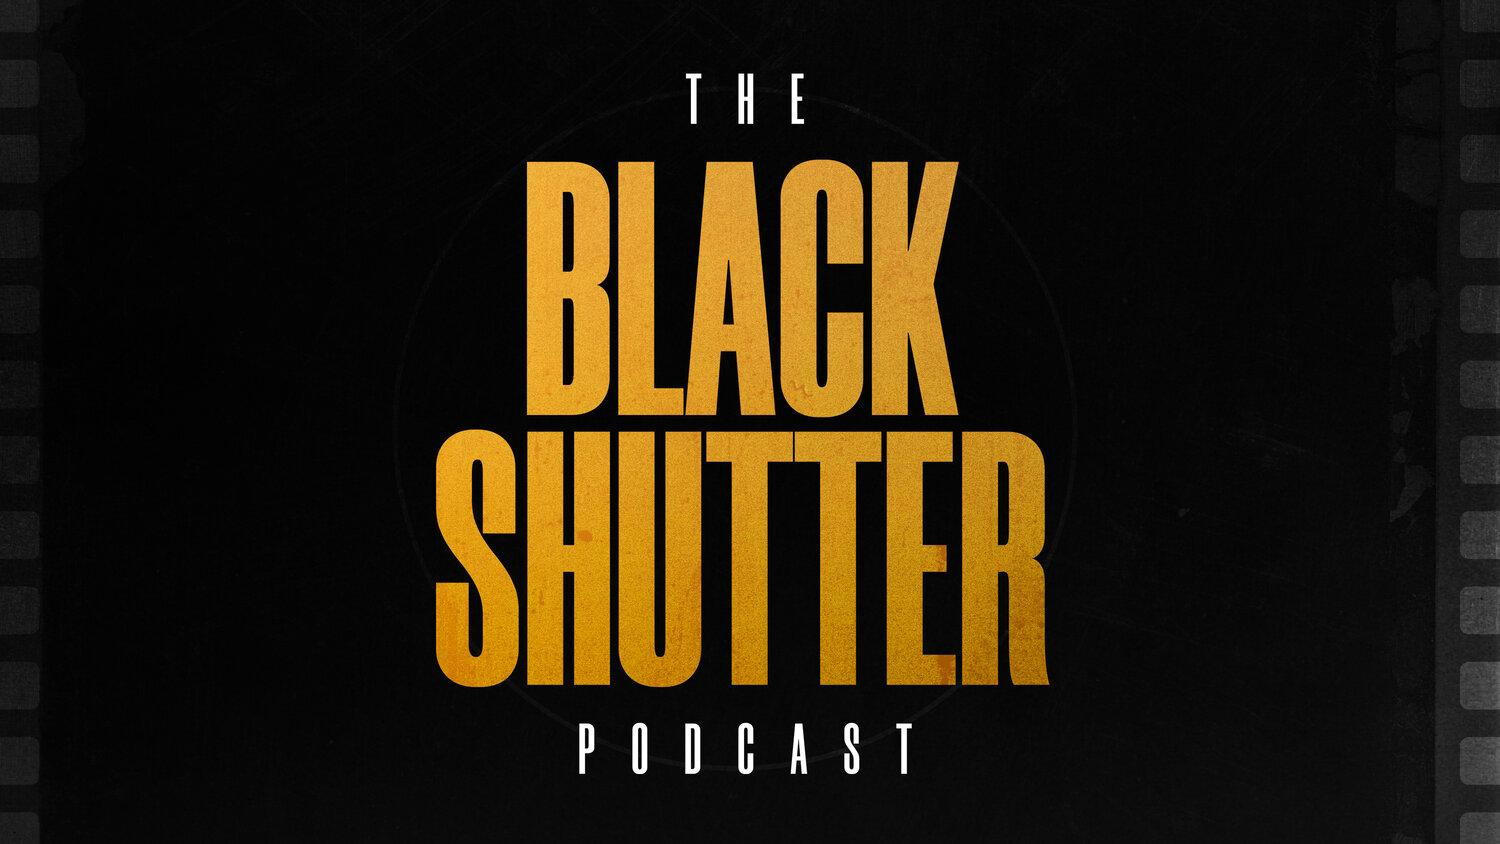 The black shutter podcast logo